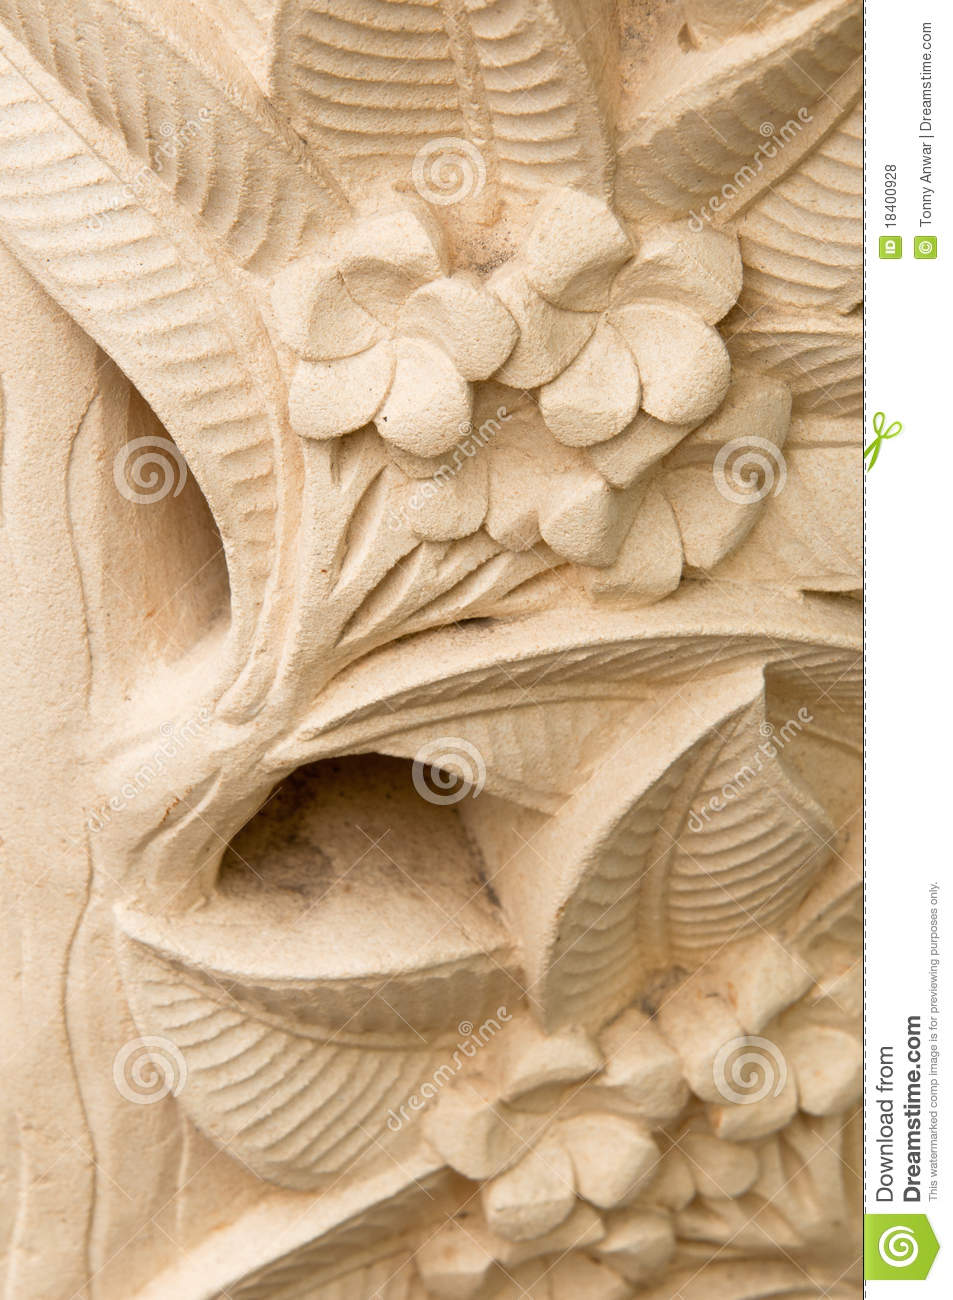 Stone carving pictures posters news and videos on your